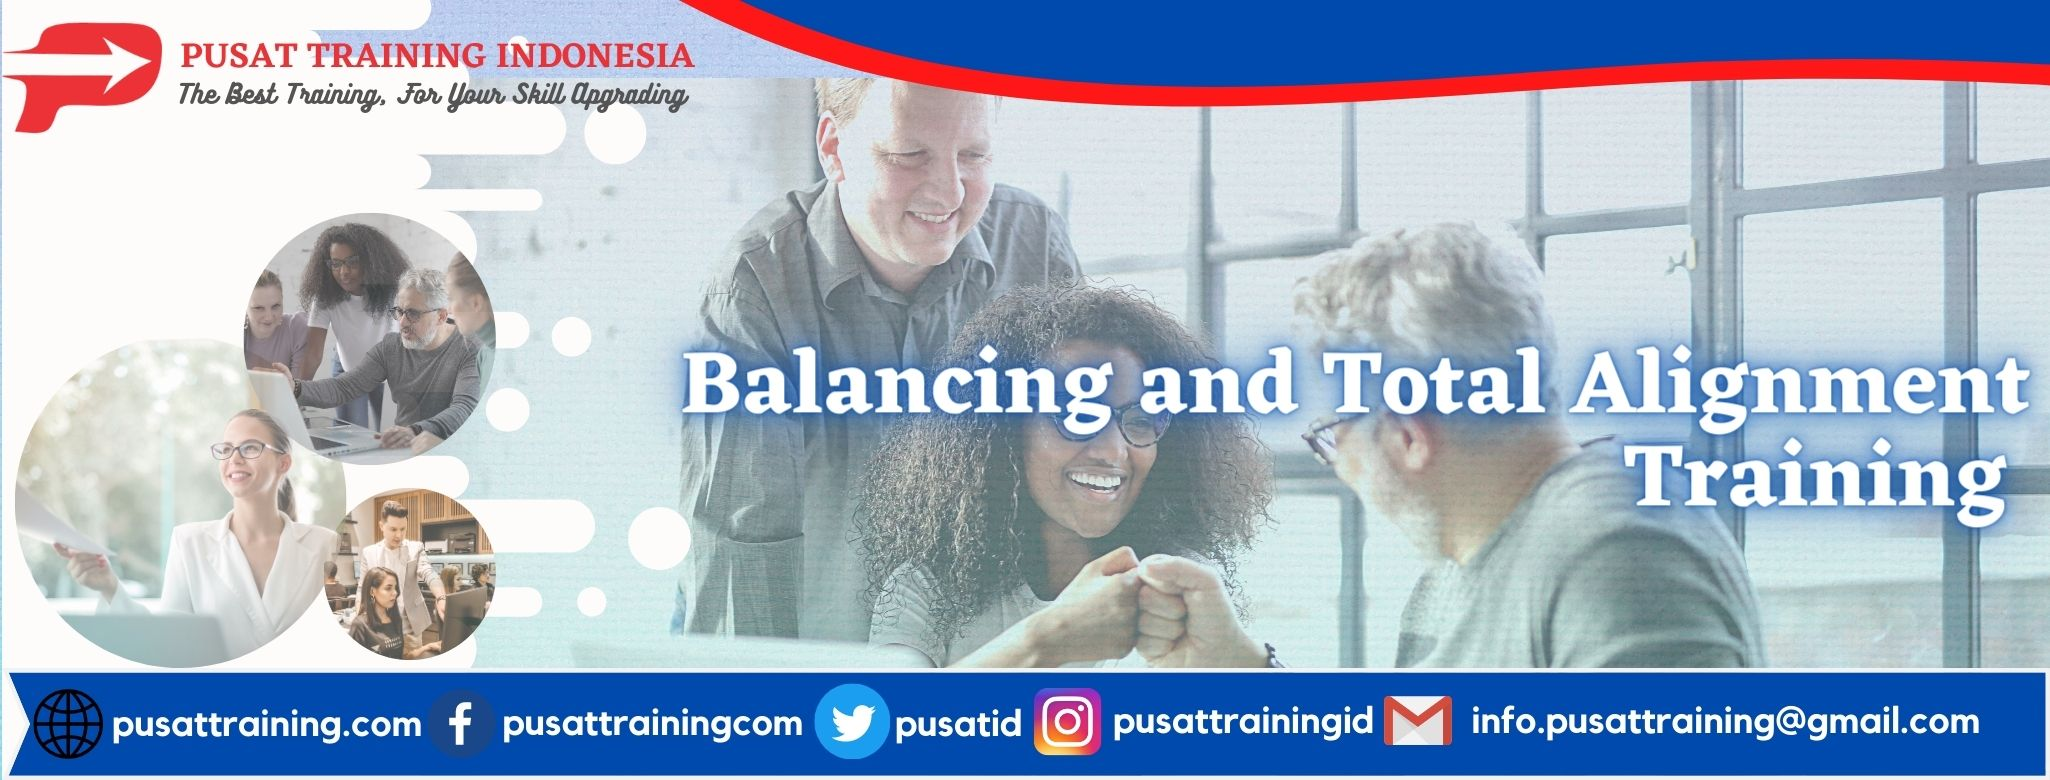 Balancing-and-Total-Alignment-Training-